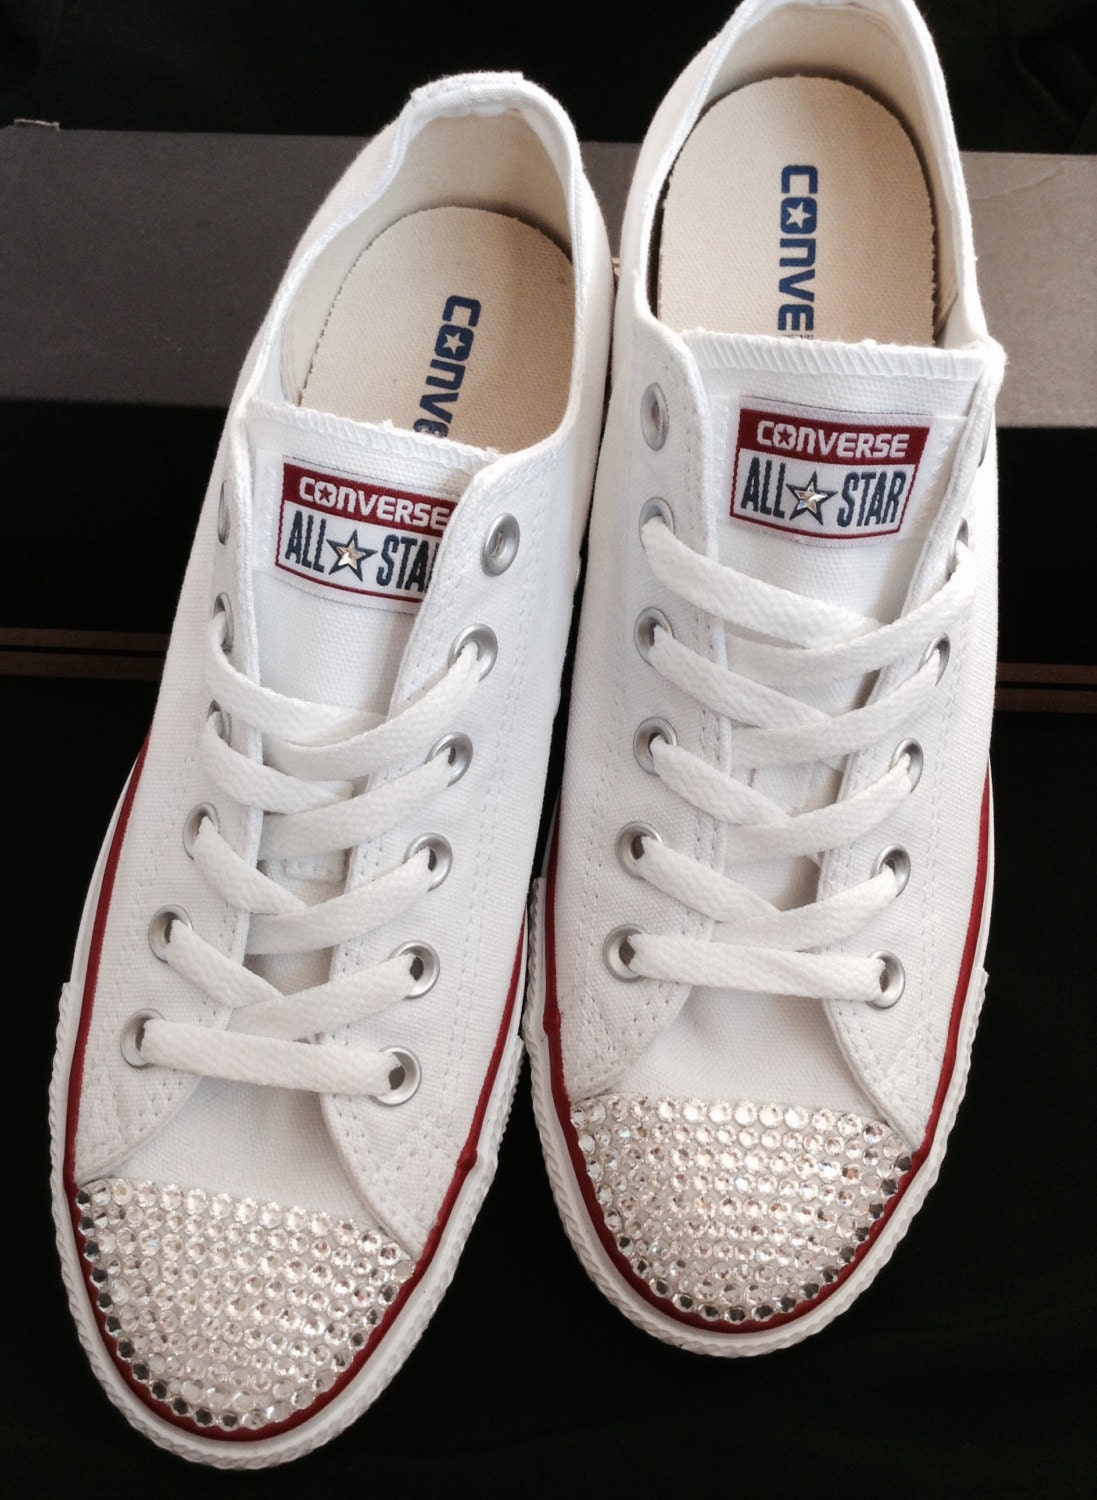 White Converse Kicks Ladies Mens Custom Canvas Low Top w  Swarovski Crystal  Bling Rhinestones Chuck Taylor All Star Wedding Sneakers Shoes 9dae64e37